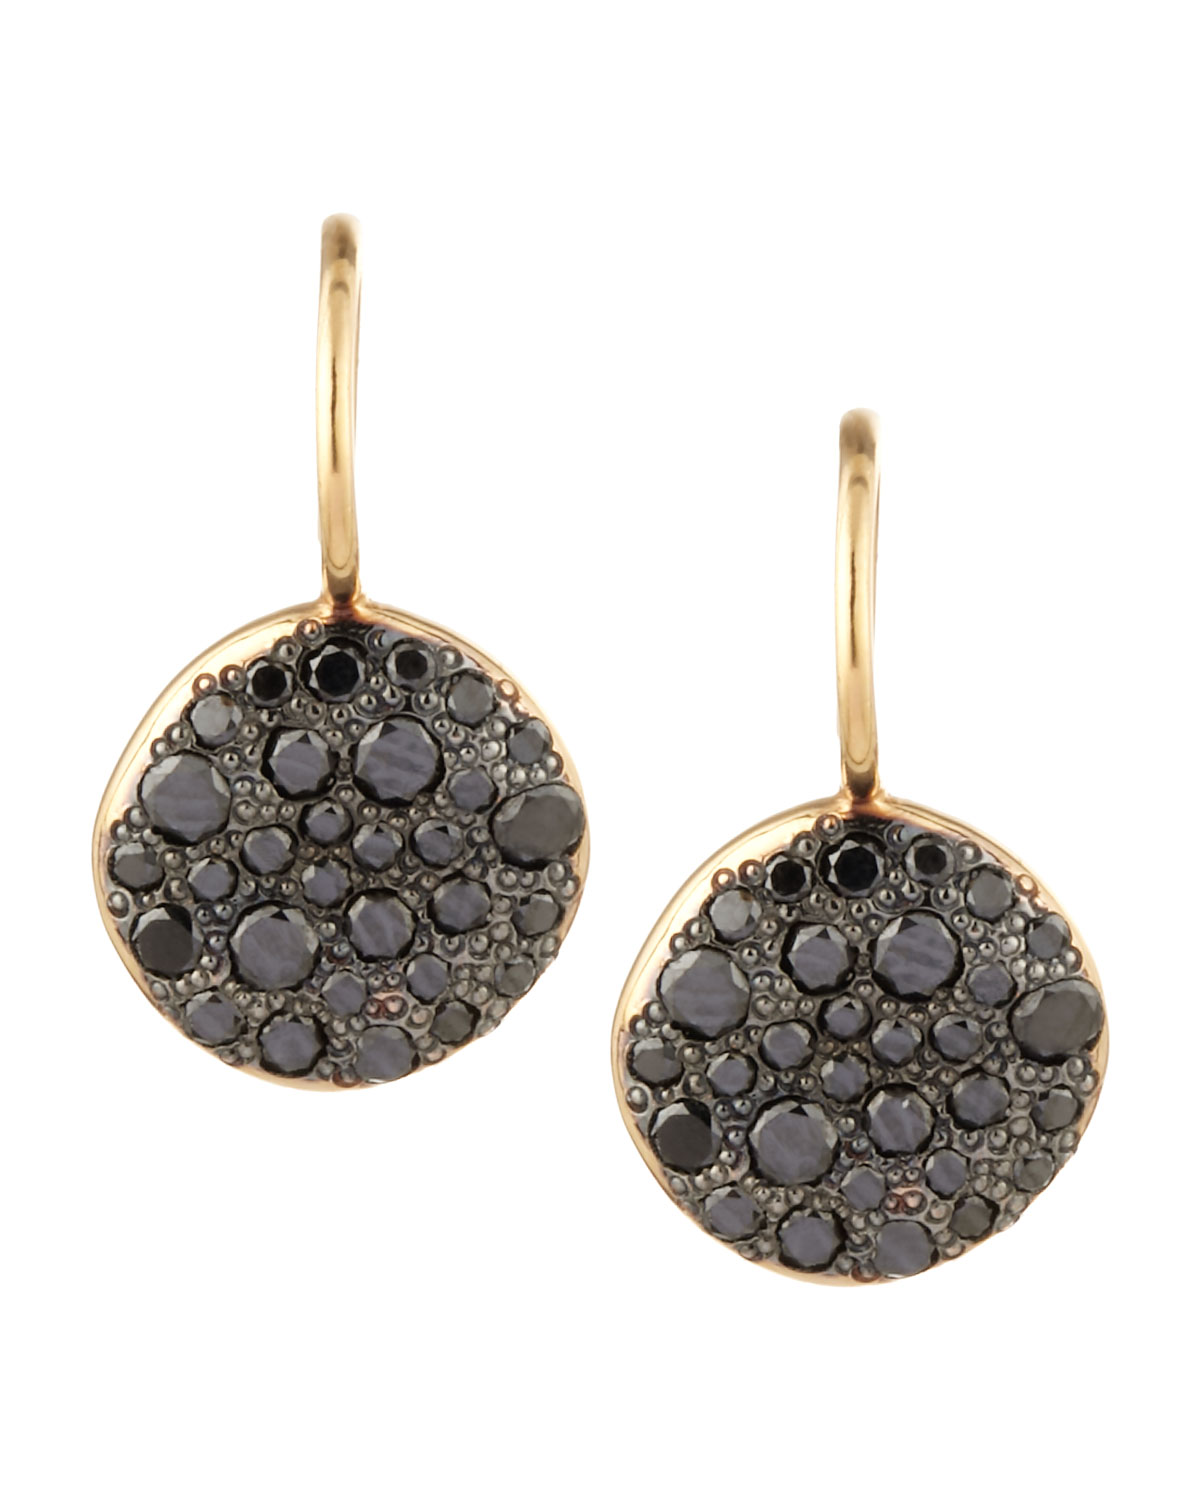 POMELLATO Sabbia Brown Pave Diamond Earrings, 0.78 TCW